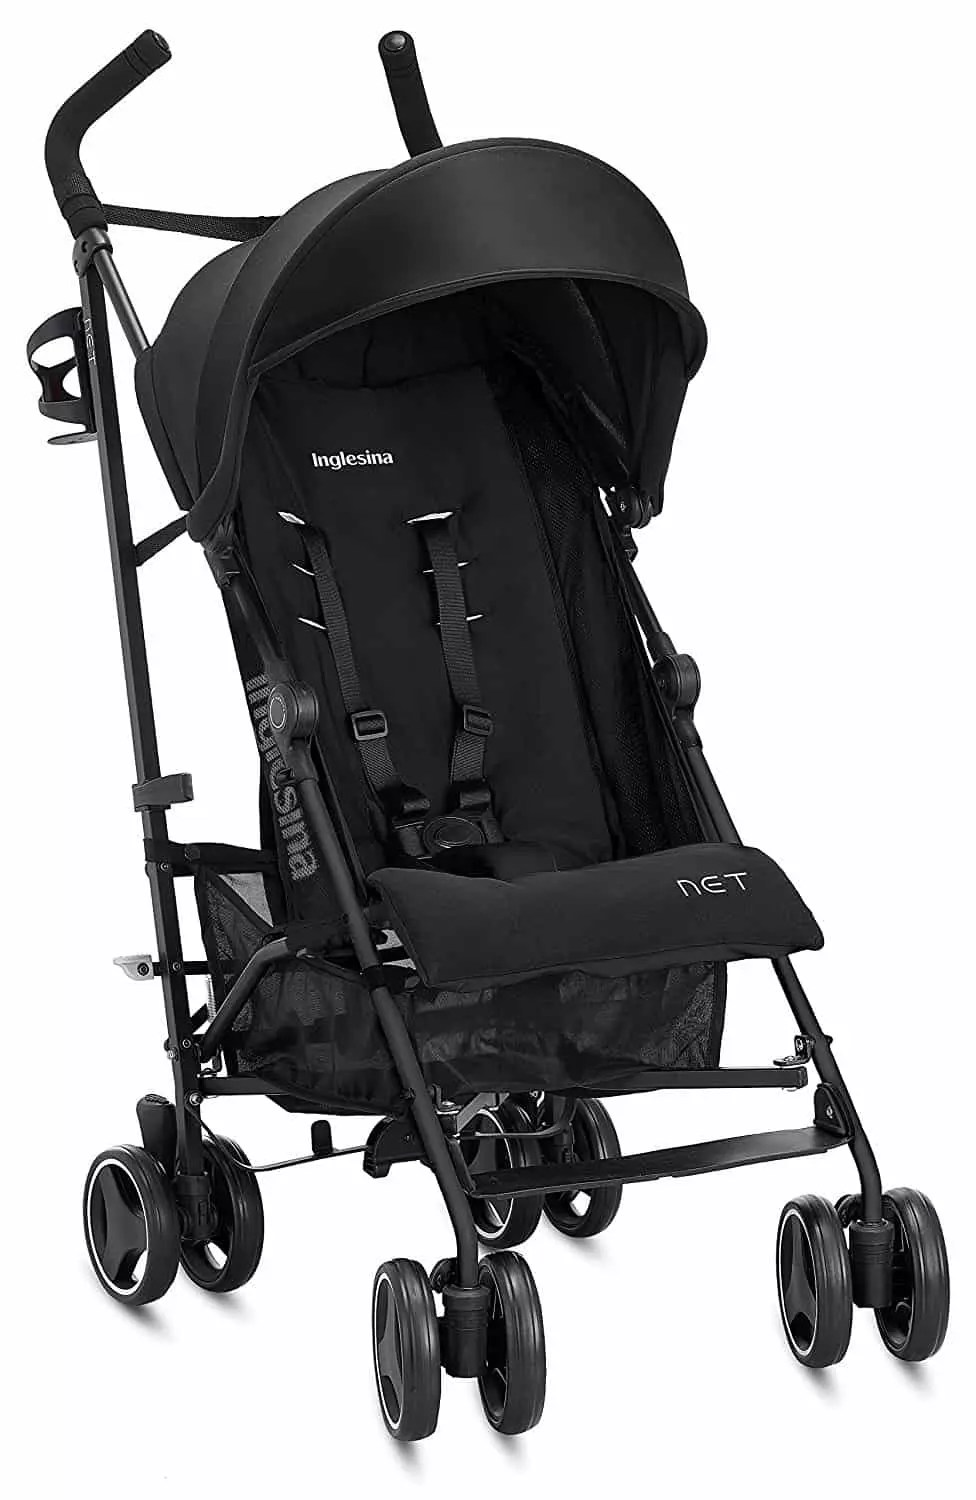 Baby Buggy Brands Stroller Brand Review Inglesina Baby Bargains